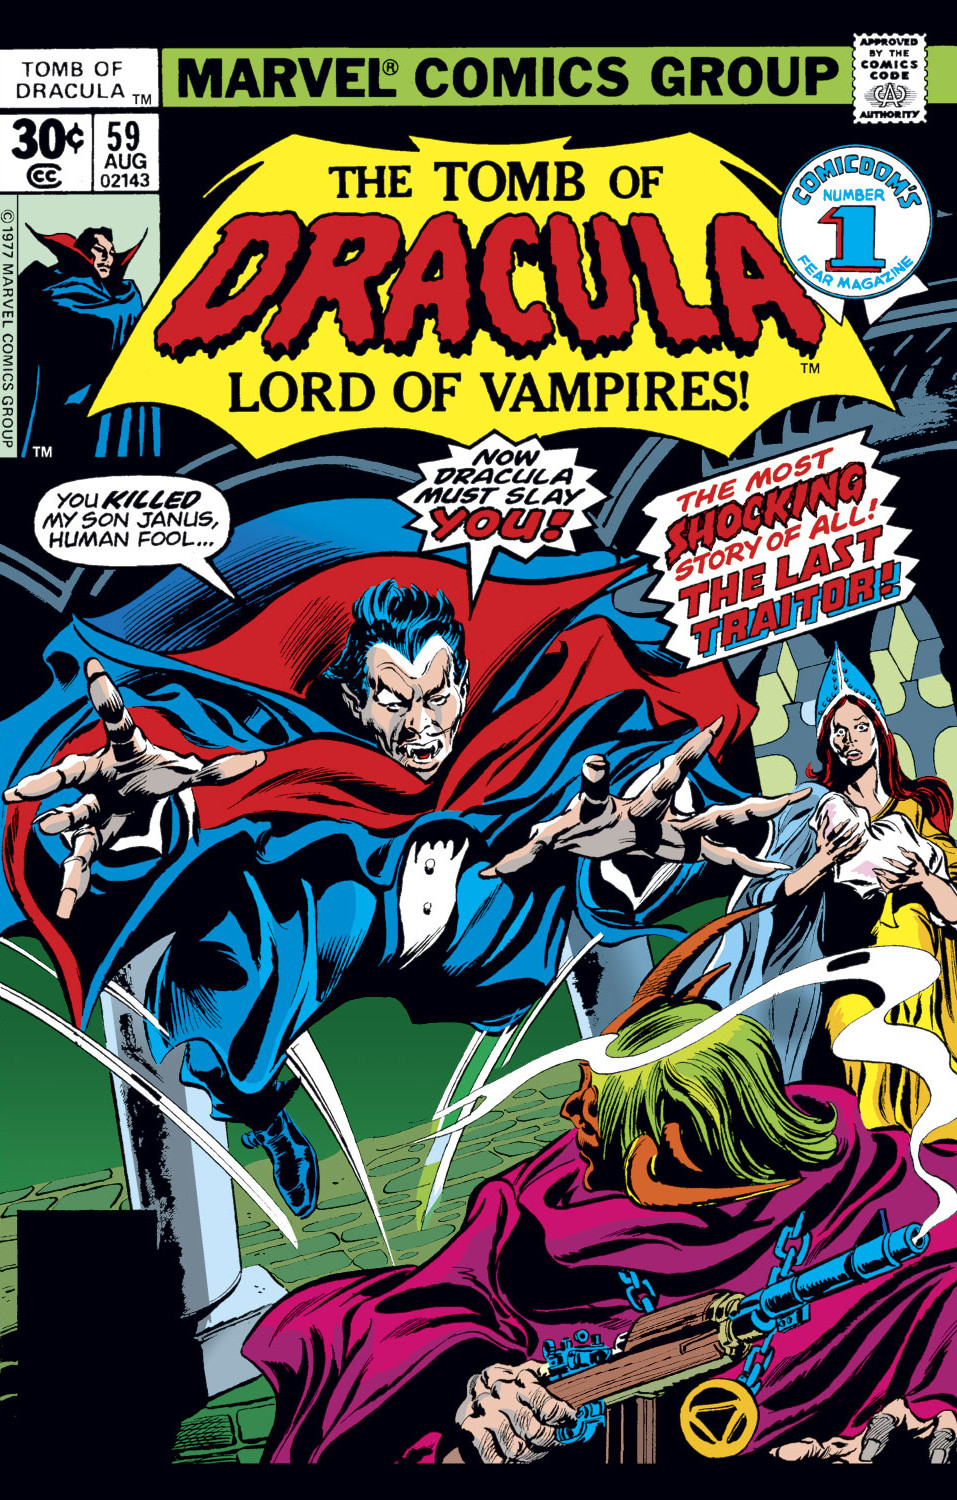 Tomb of Dracula Vol 1 59